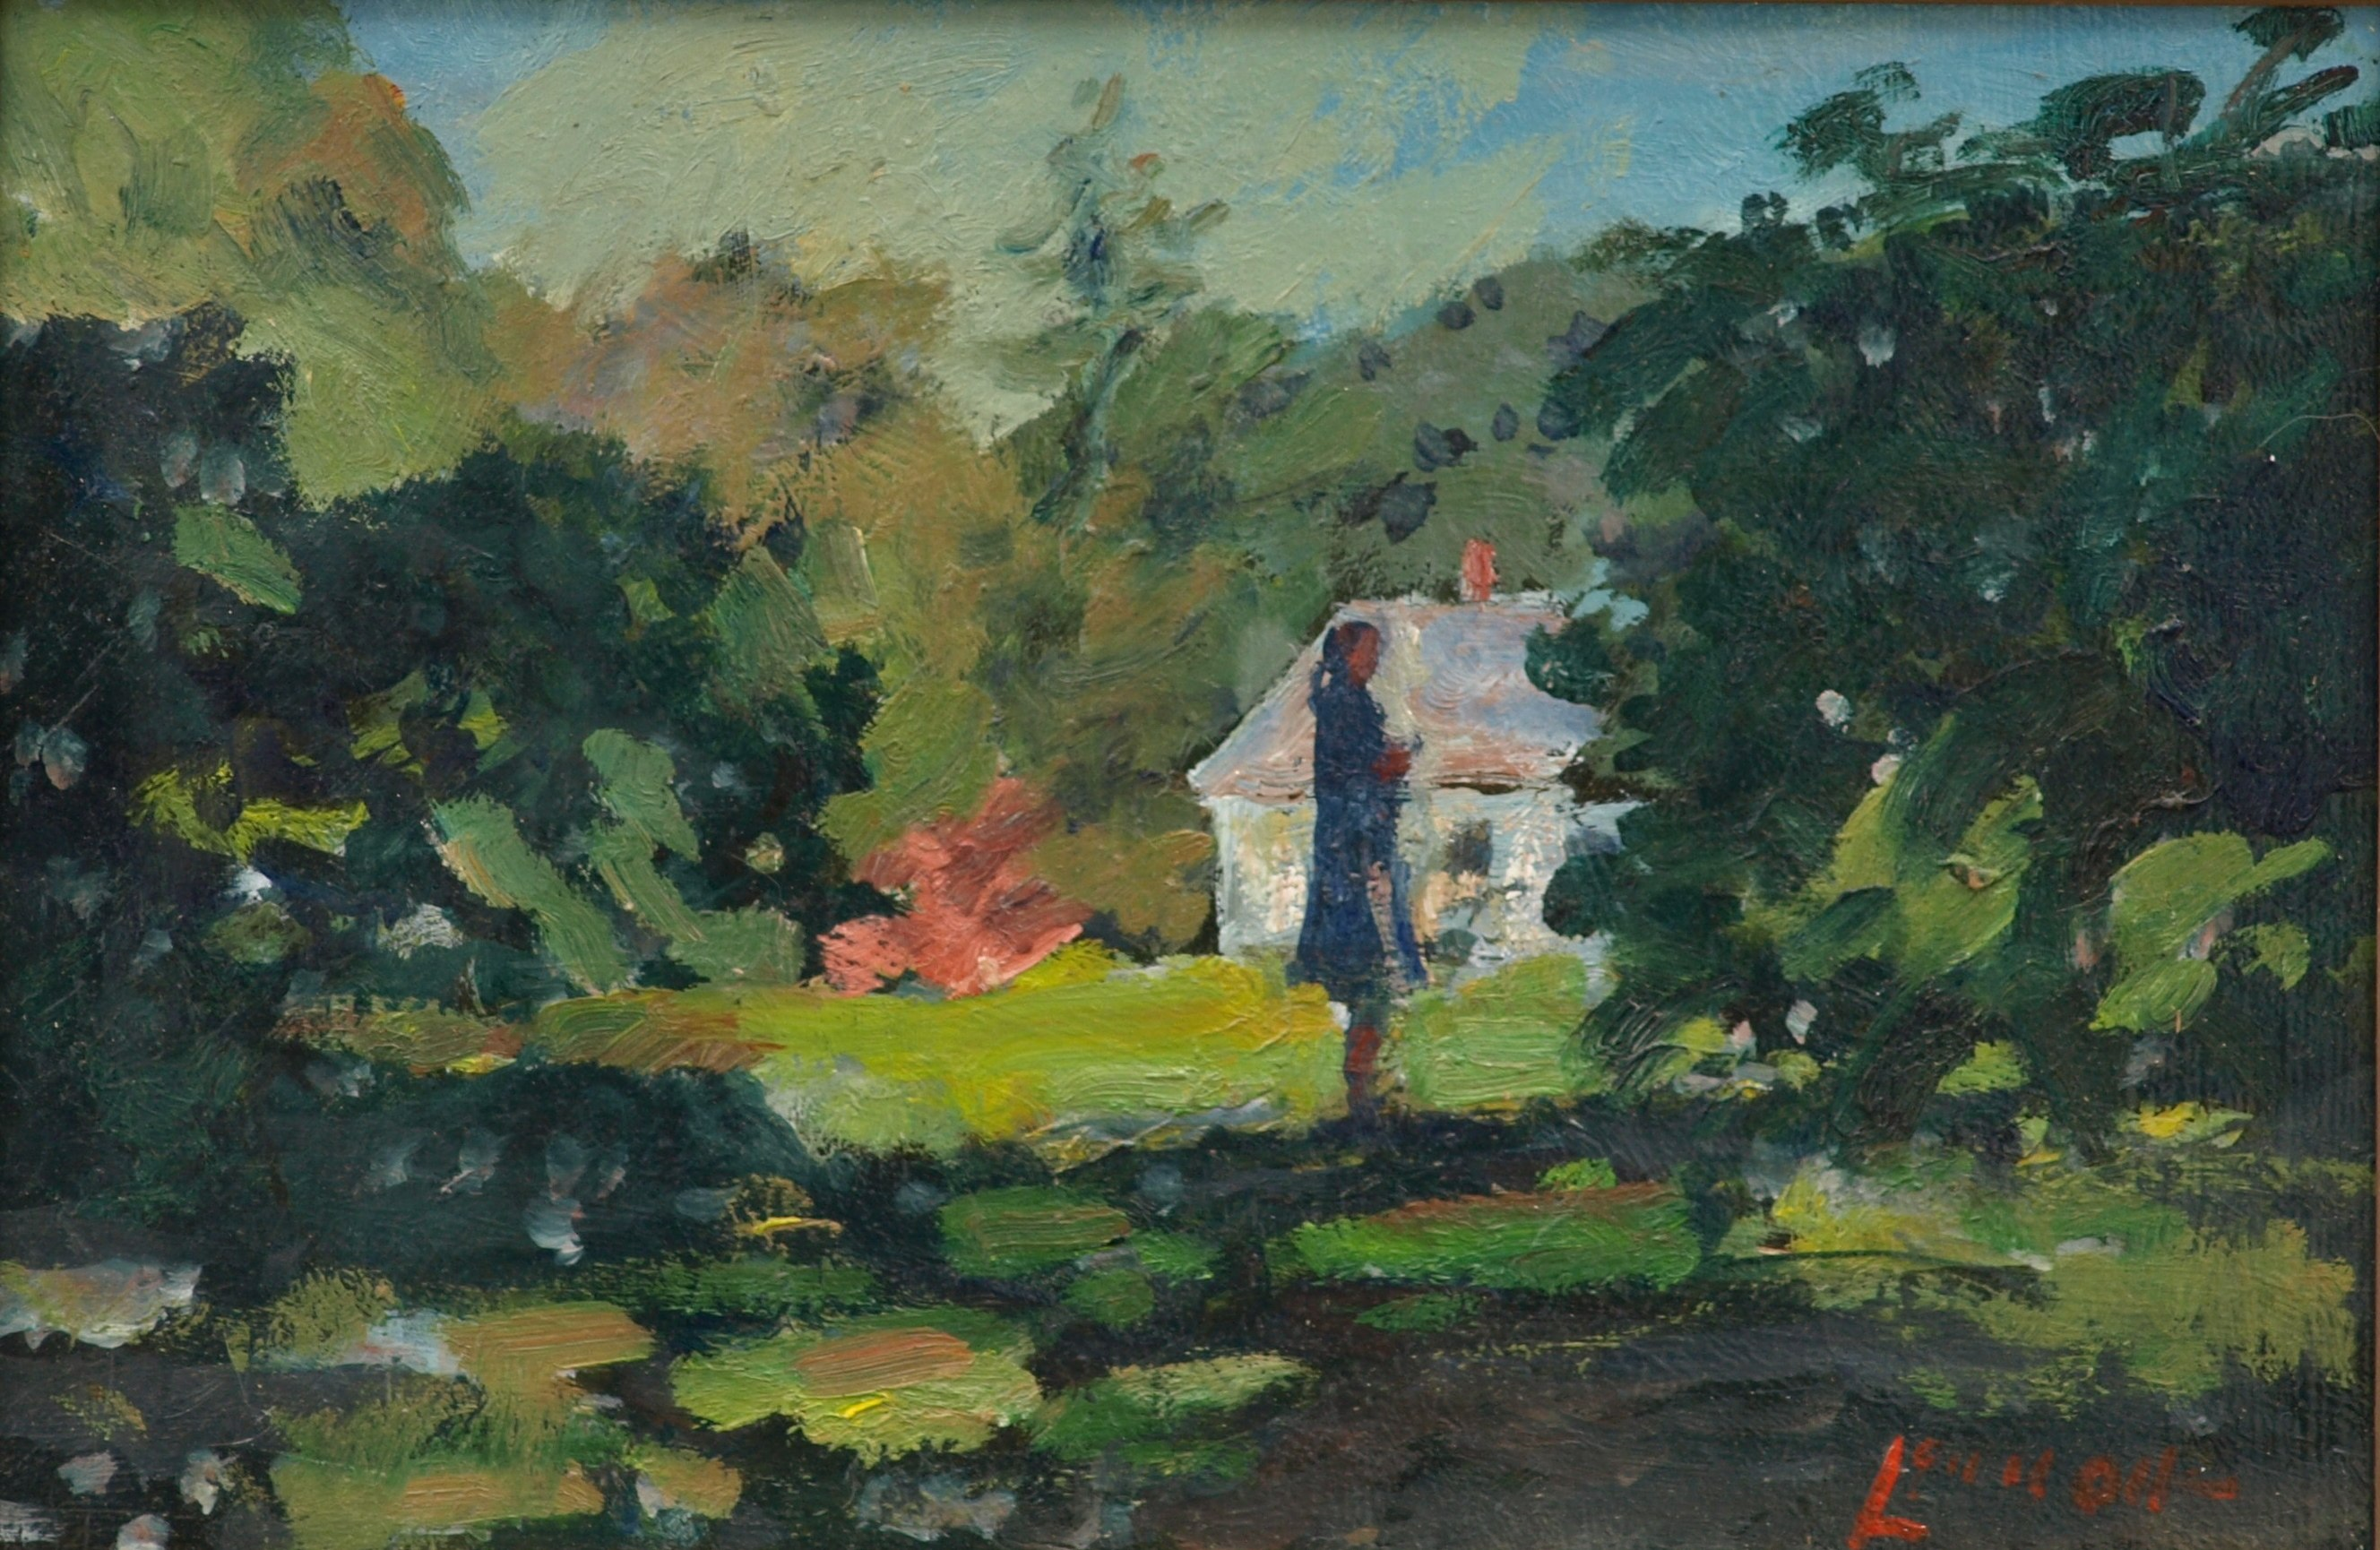 Pausing Near the Farm, Oil on Panel, 8 x 12 Inches, by Bernard Lennon, $200